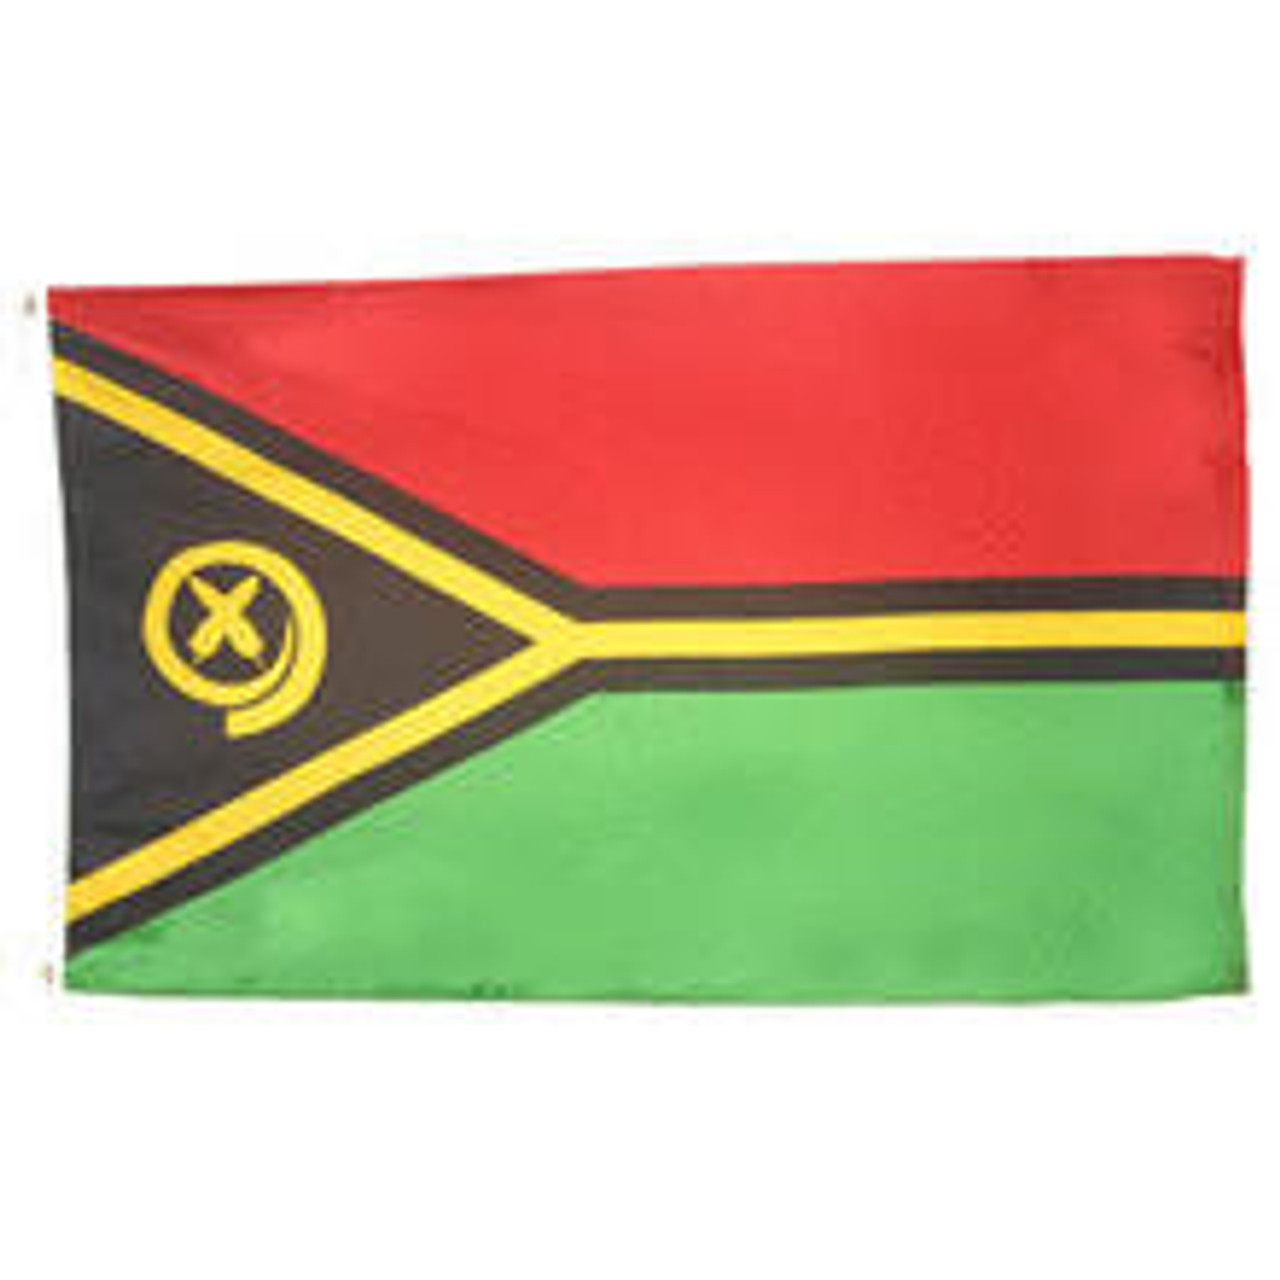 A Vanuatu Flag flag with a design of a horizontal bicolor of red and green with a black isosceles triangle with an emblem of a golden boar tusk and crossed cycad fronds. A gold stripe bordered with black divides the bicolor and borders the triangle.